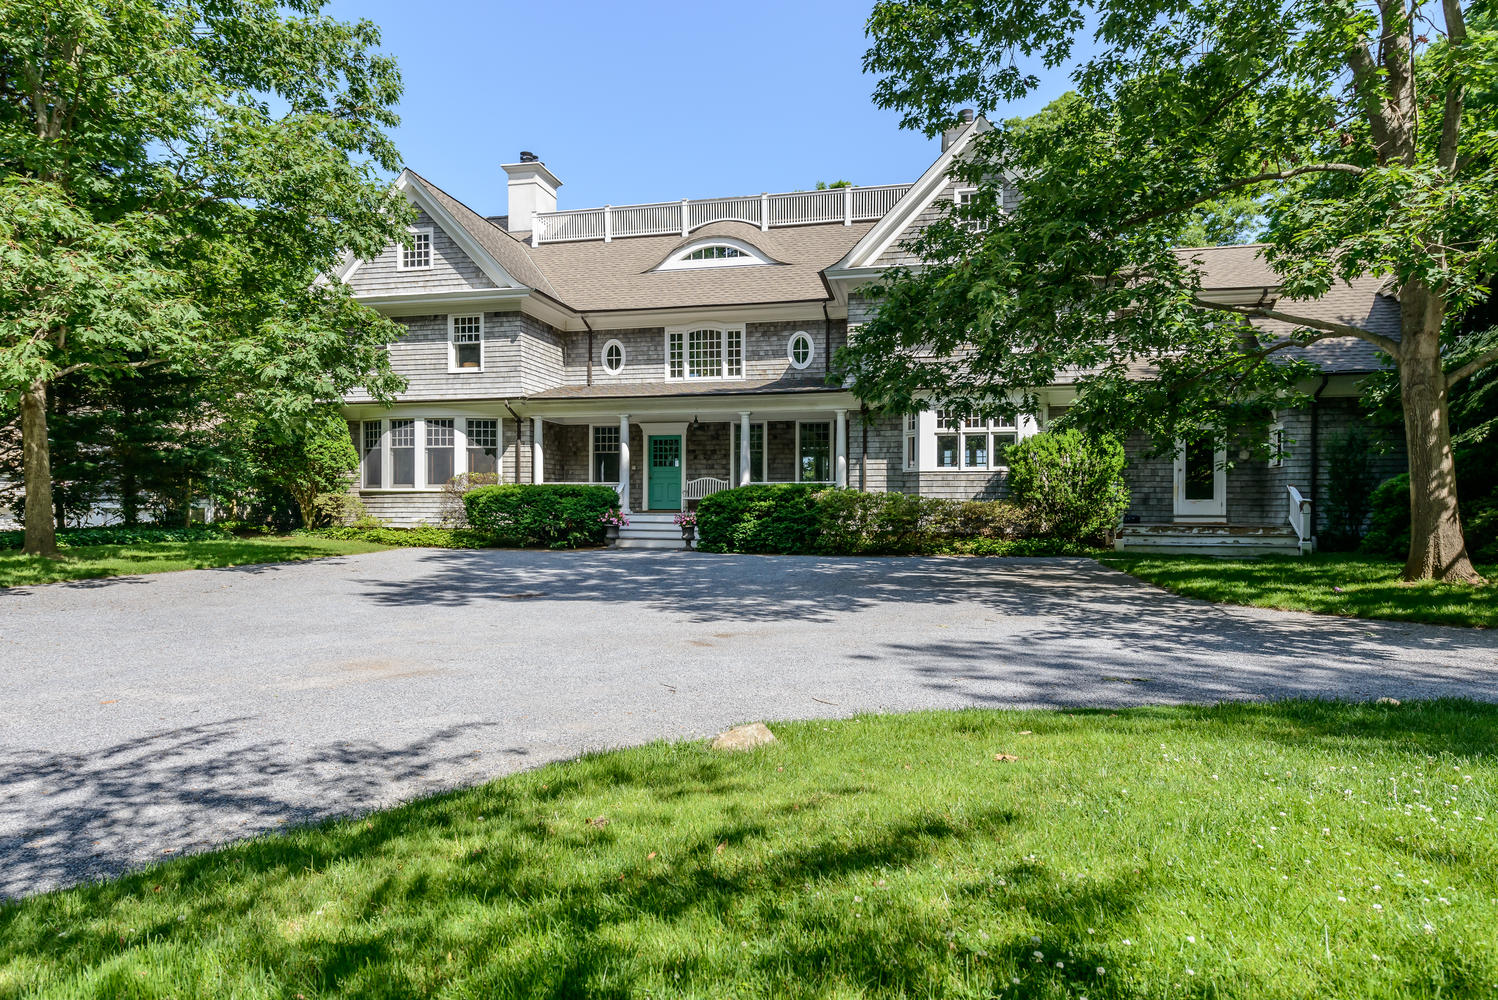 Single Family Home for Sale at Colonial 84 Cove Rd Oyster Bay Cove, New York, 11771 United States